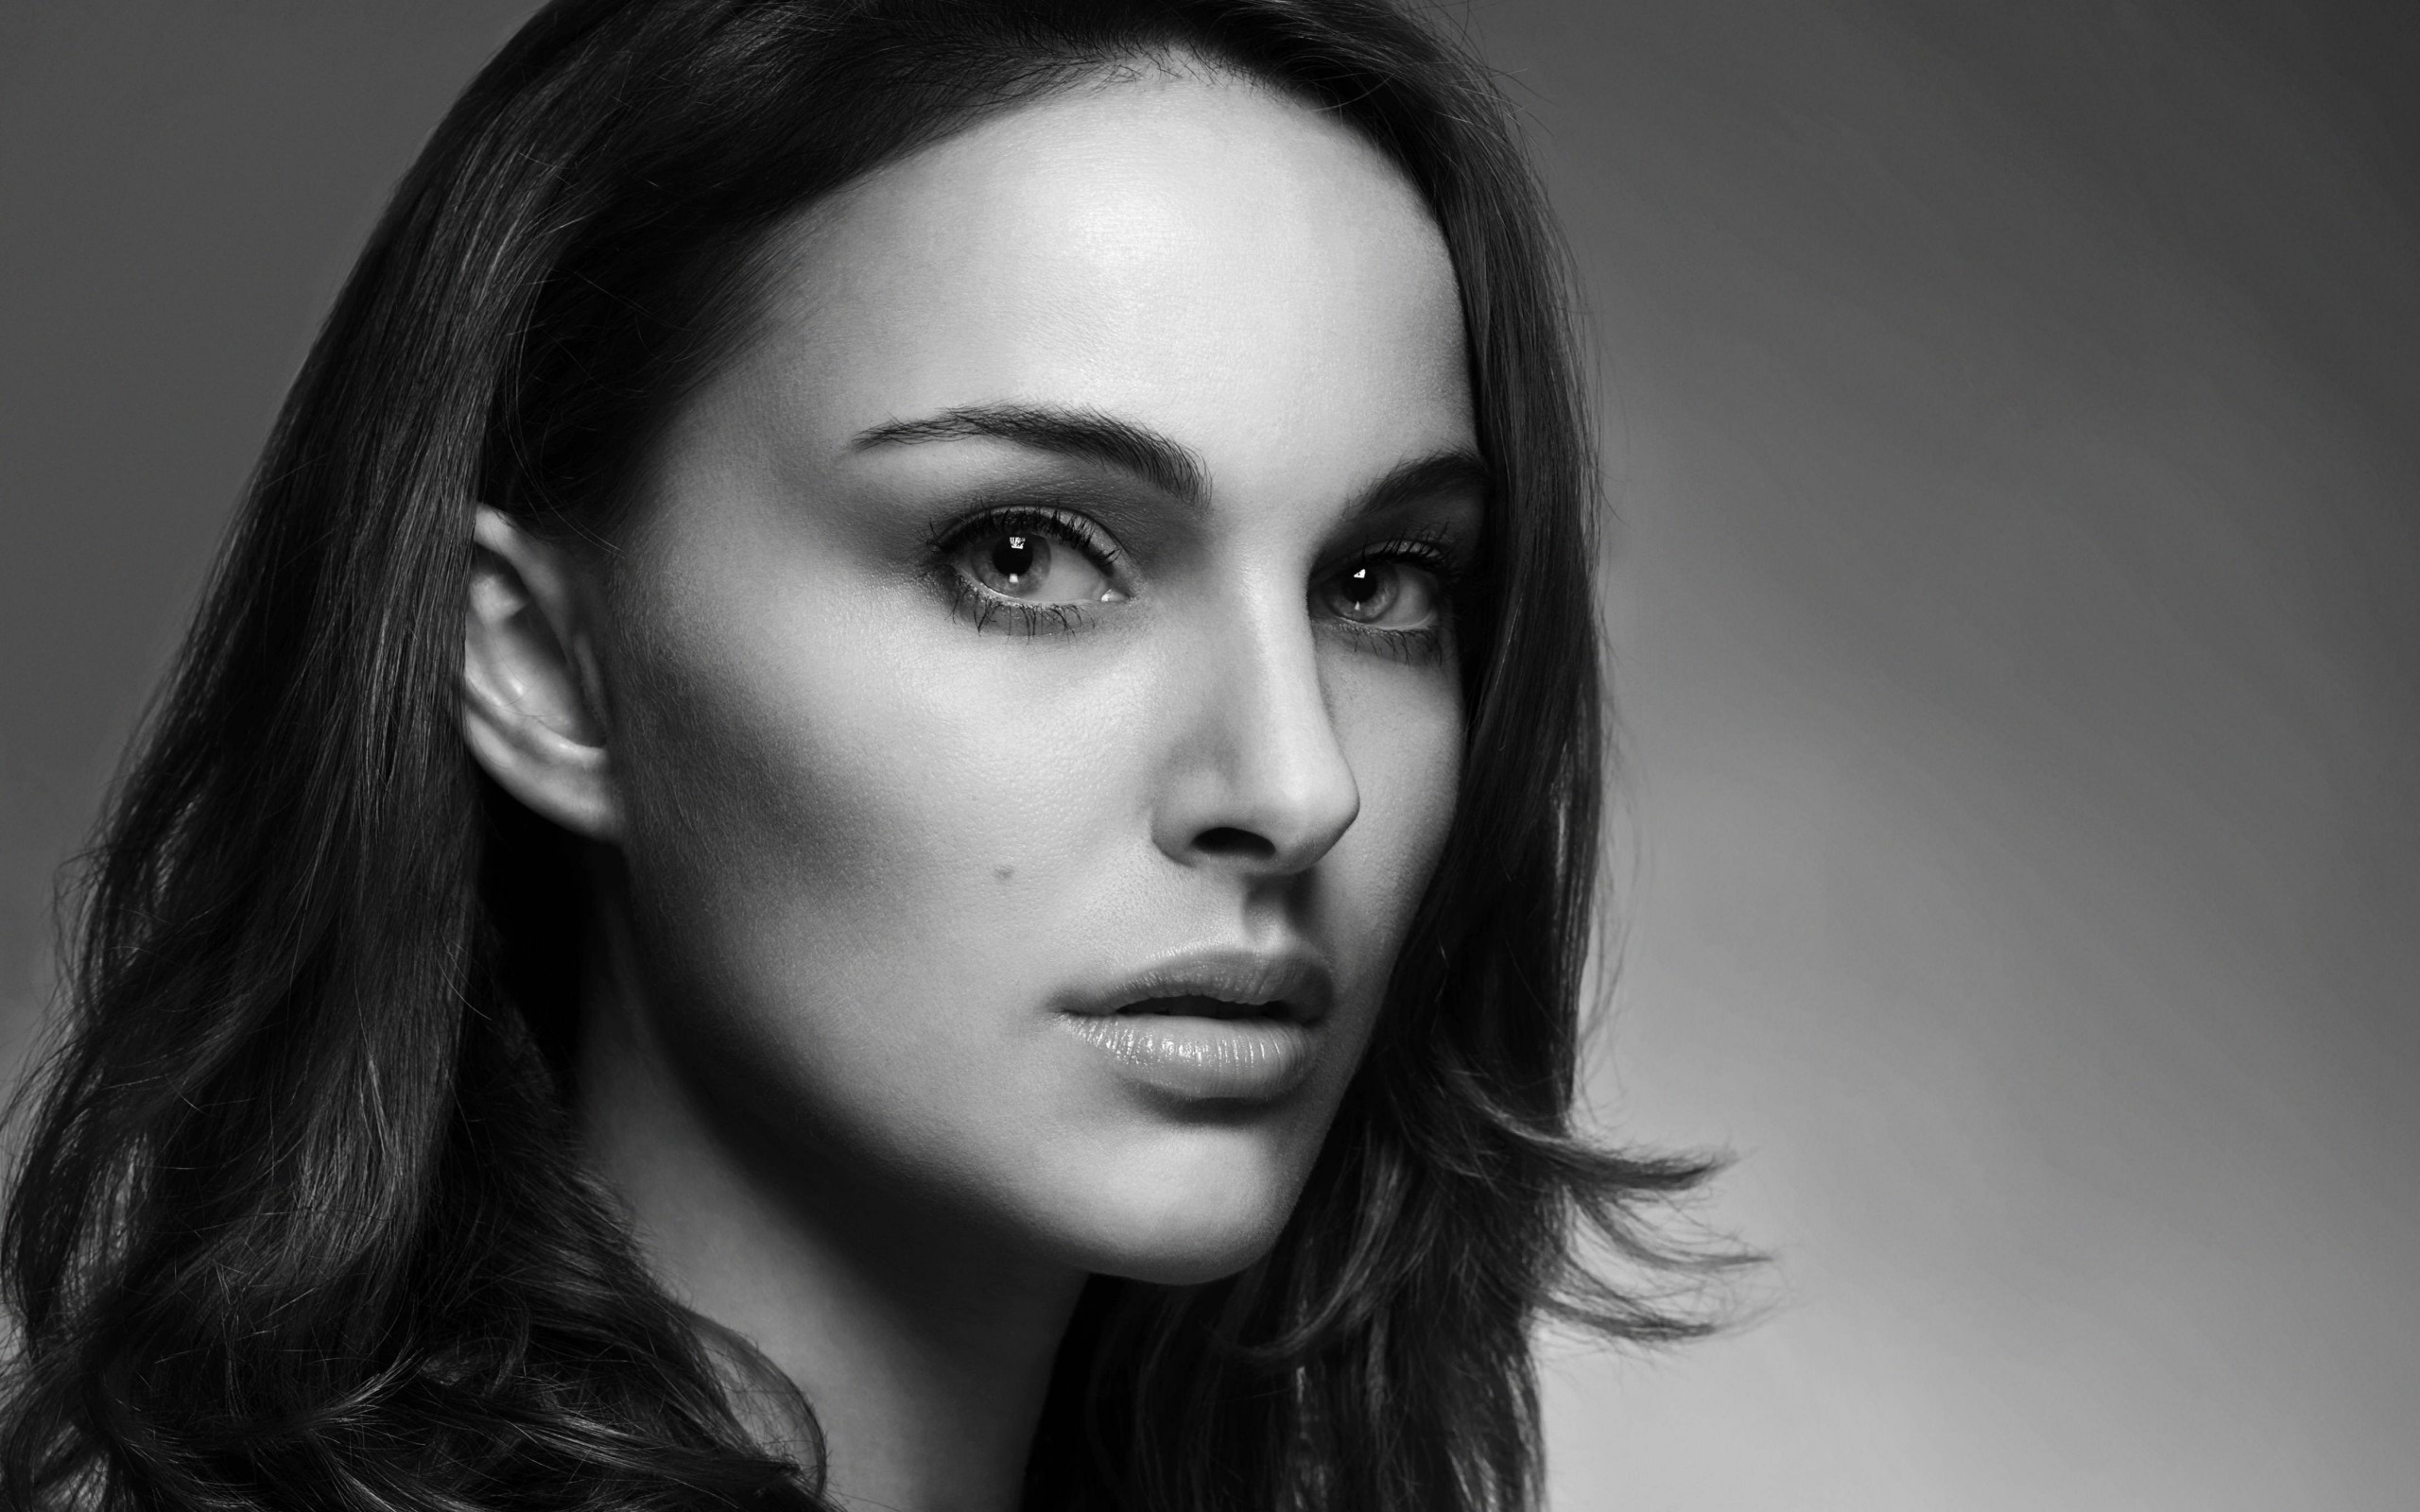 Natalie Portman in Black & White Wallpaper for Desktop 2560x1600